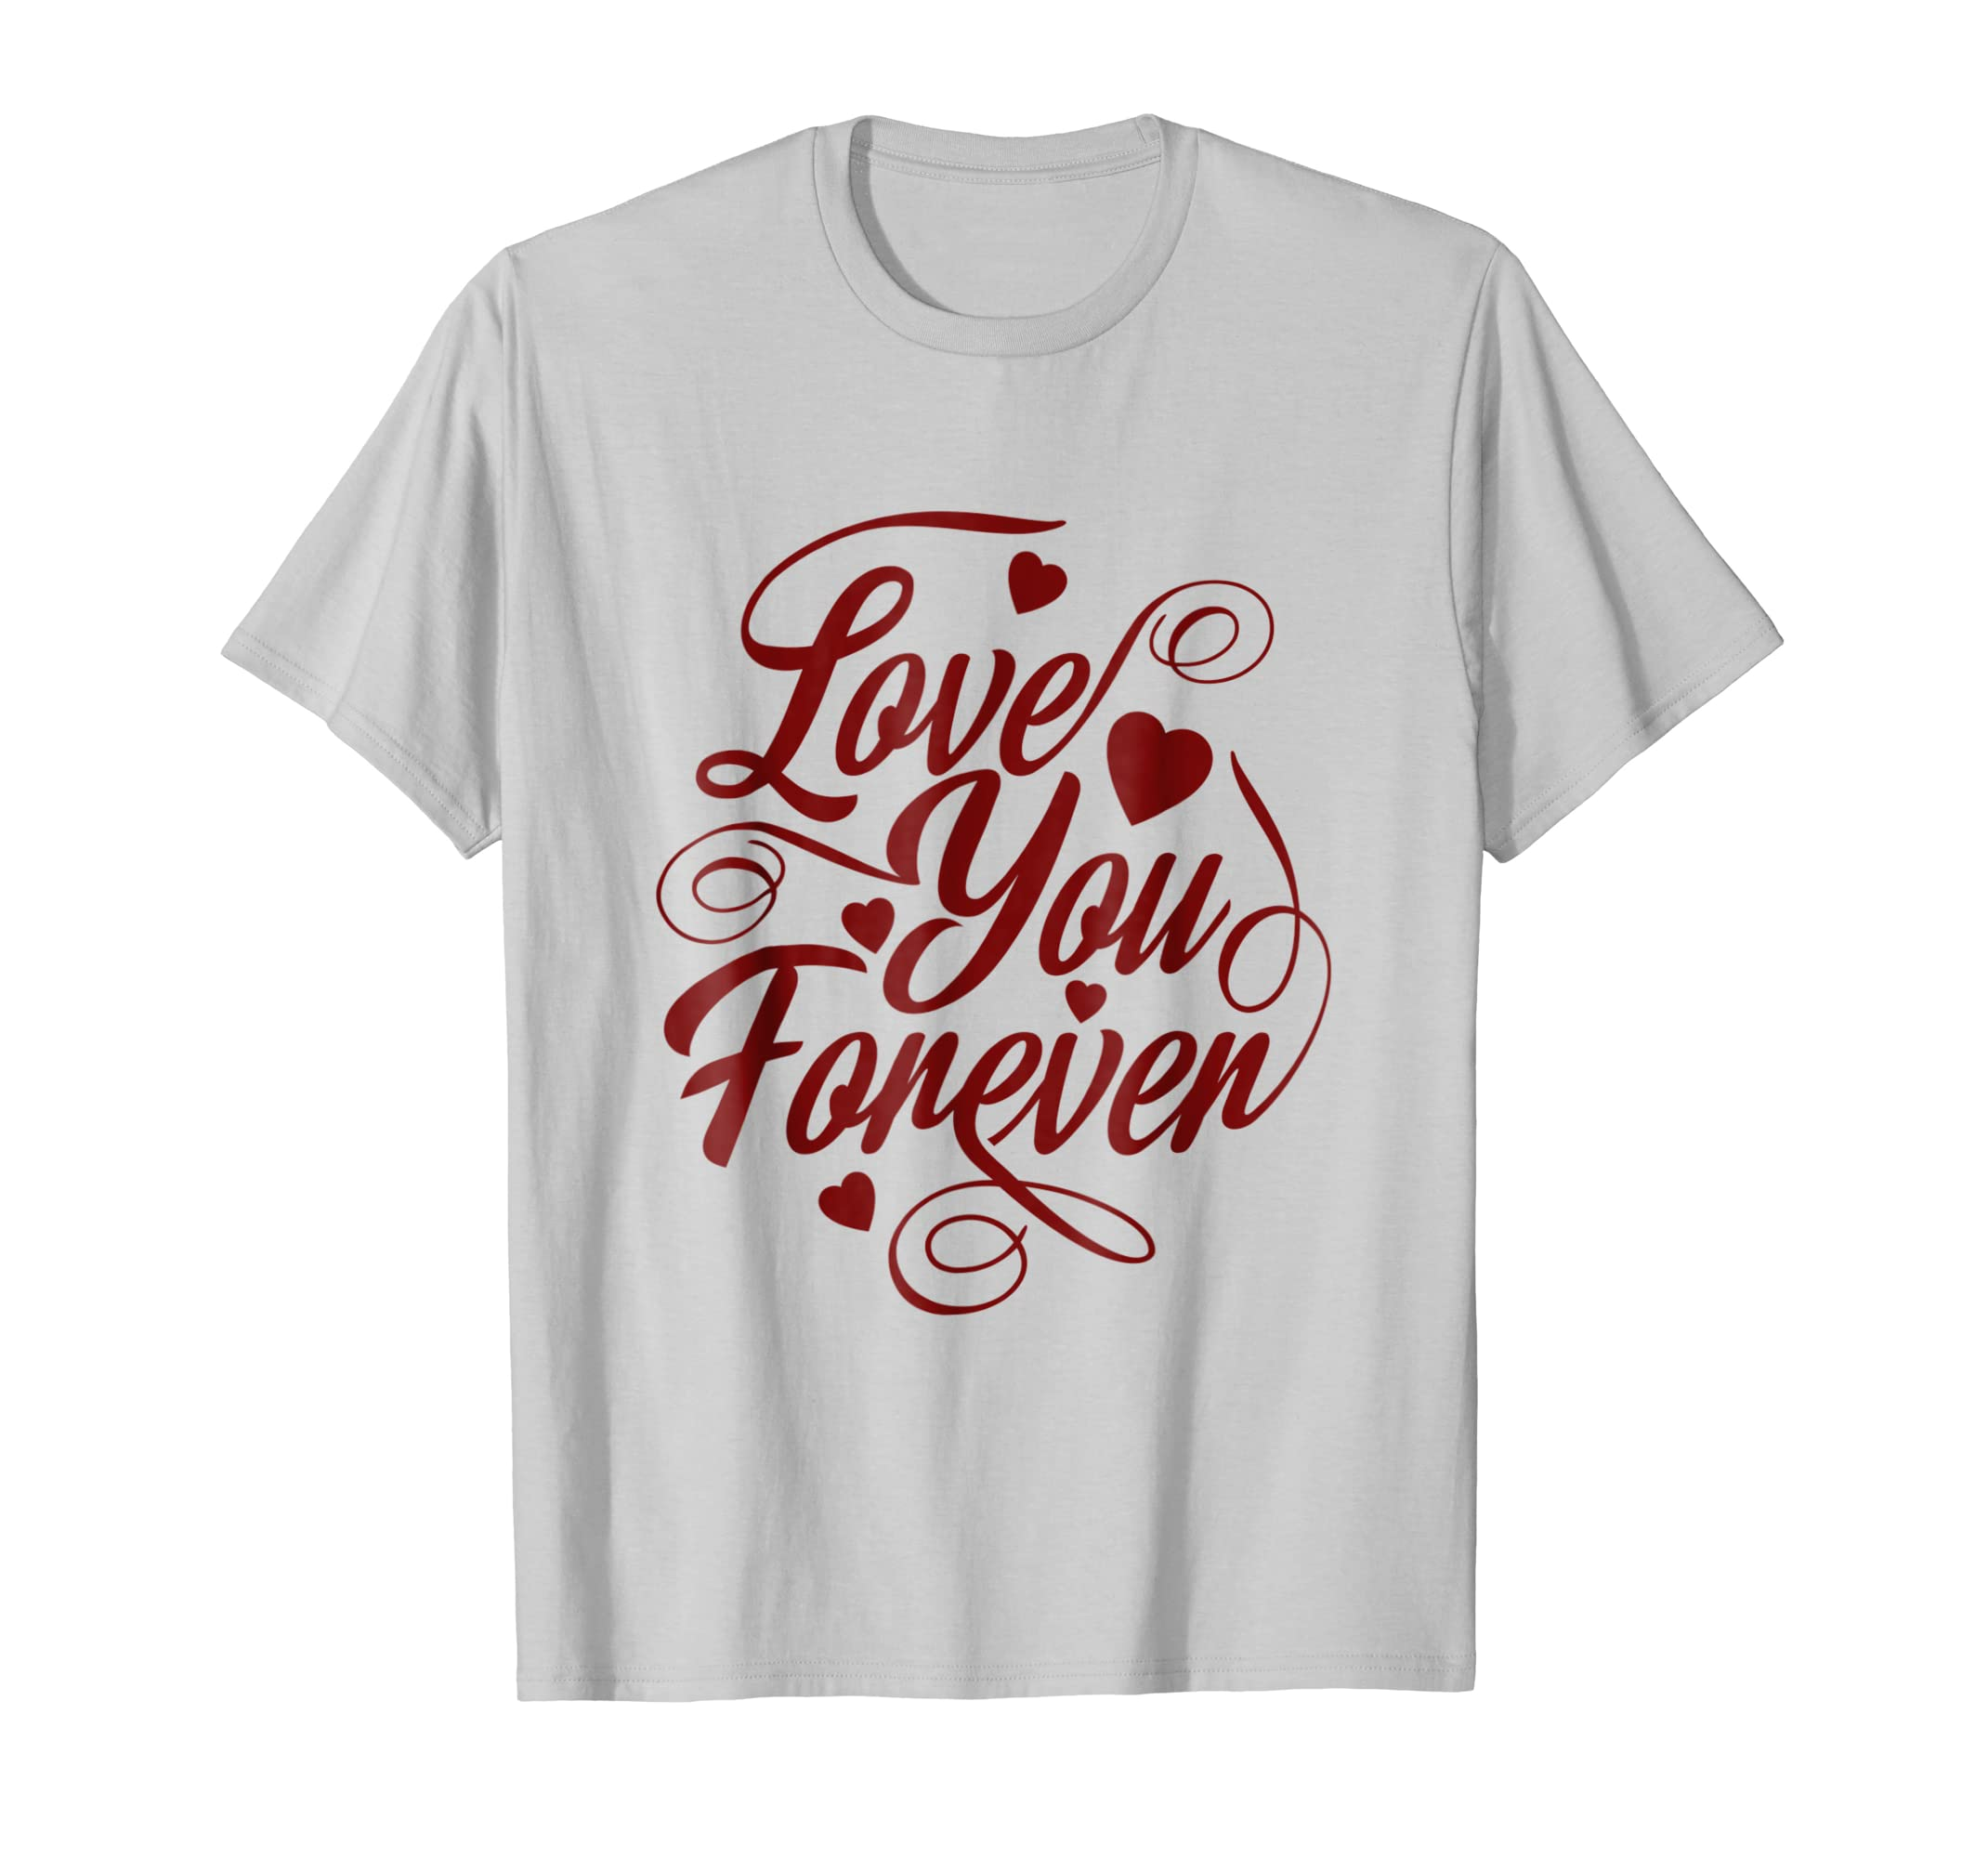 c52eb5a9 Amazon.com: Best Friends Forever Funny T-Shirt Gif: Clothing